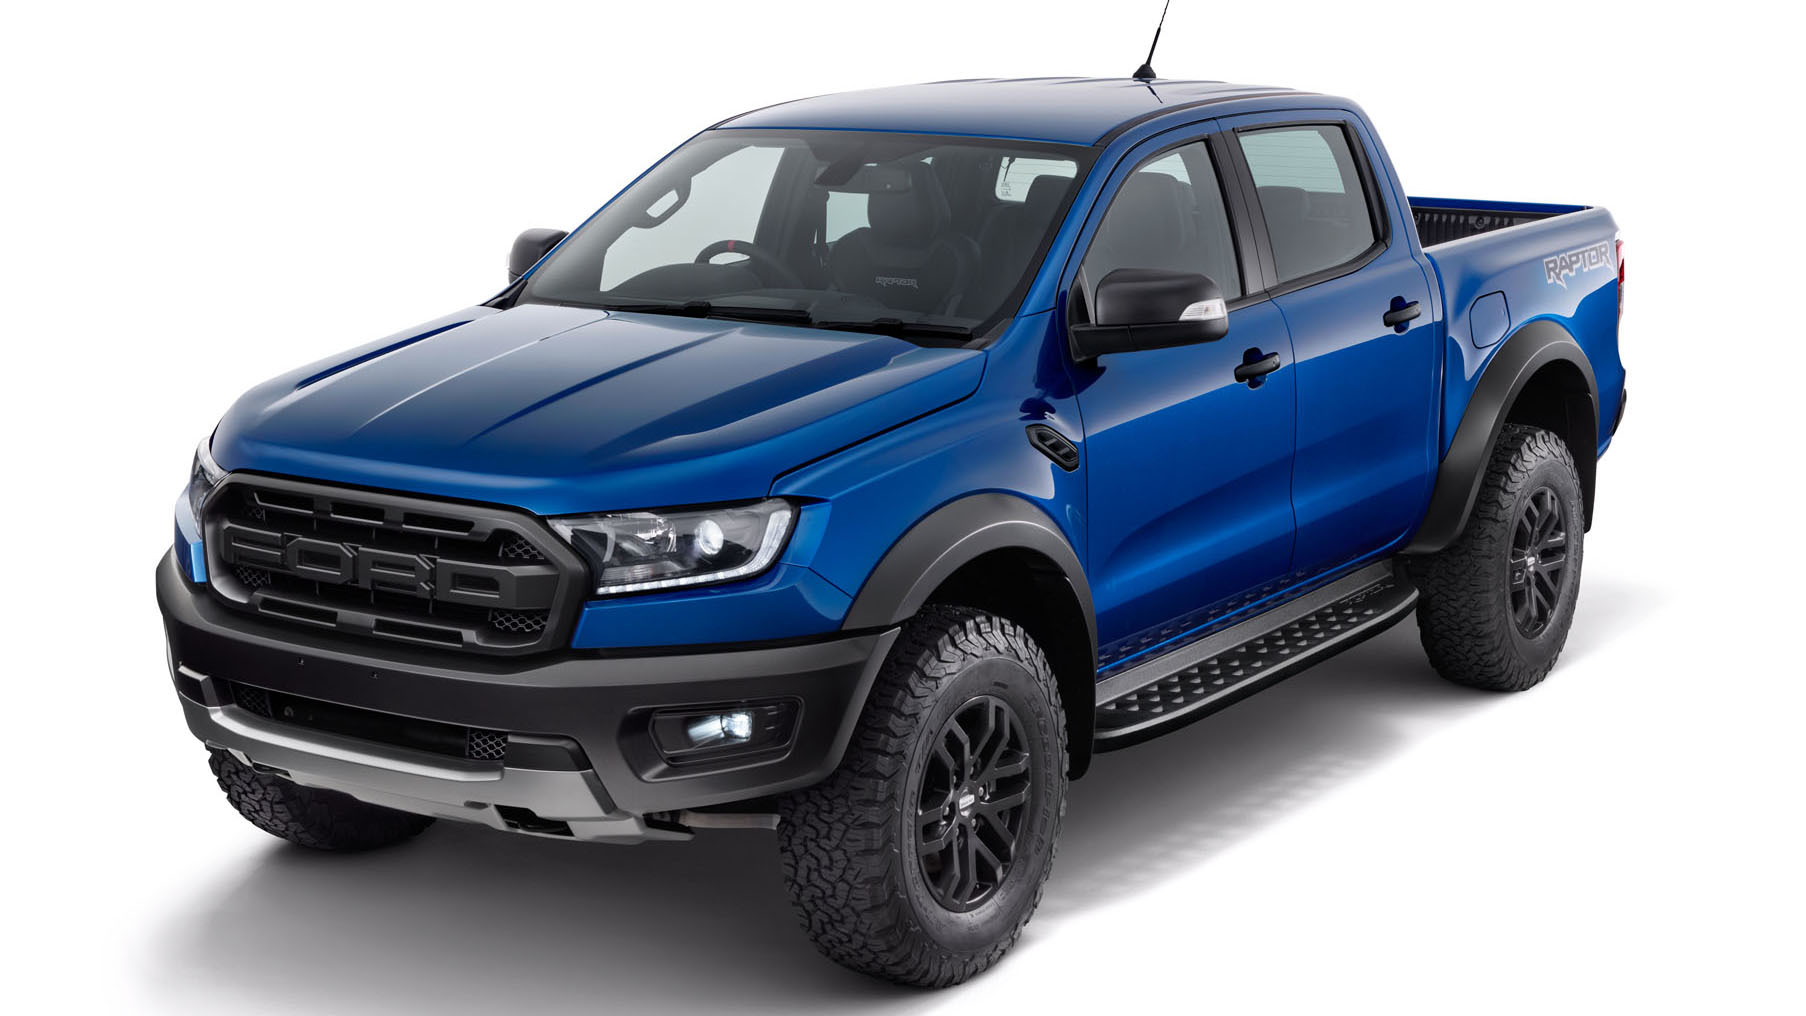 Ford Ranger Raptor Could Be US-Bound But Will Drop The